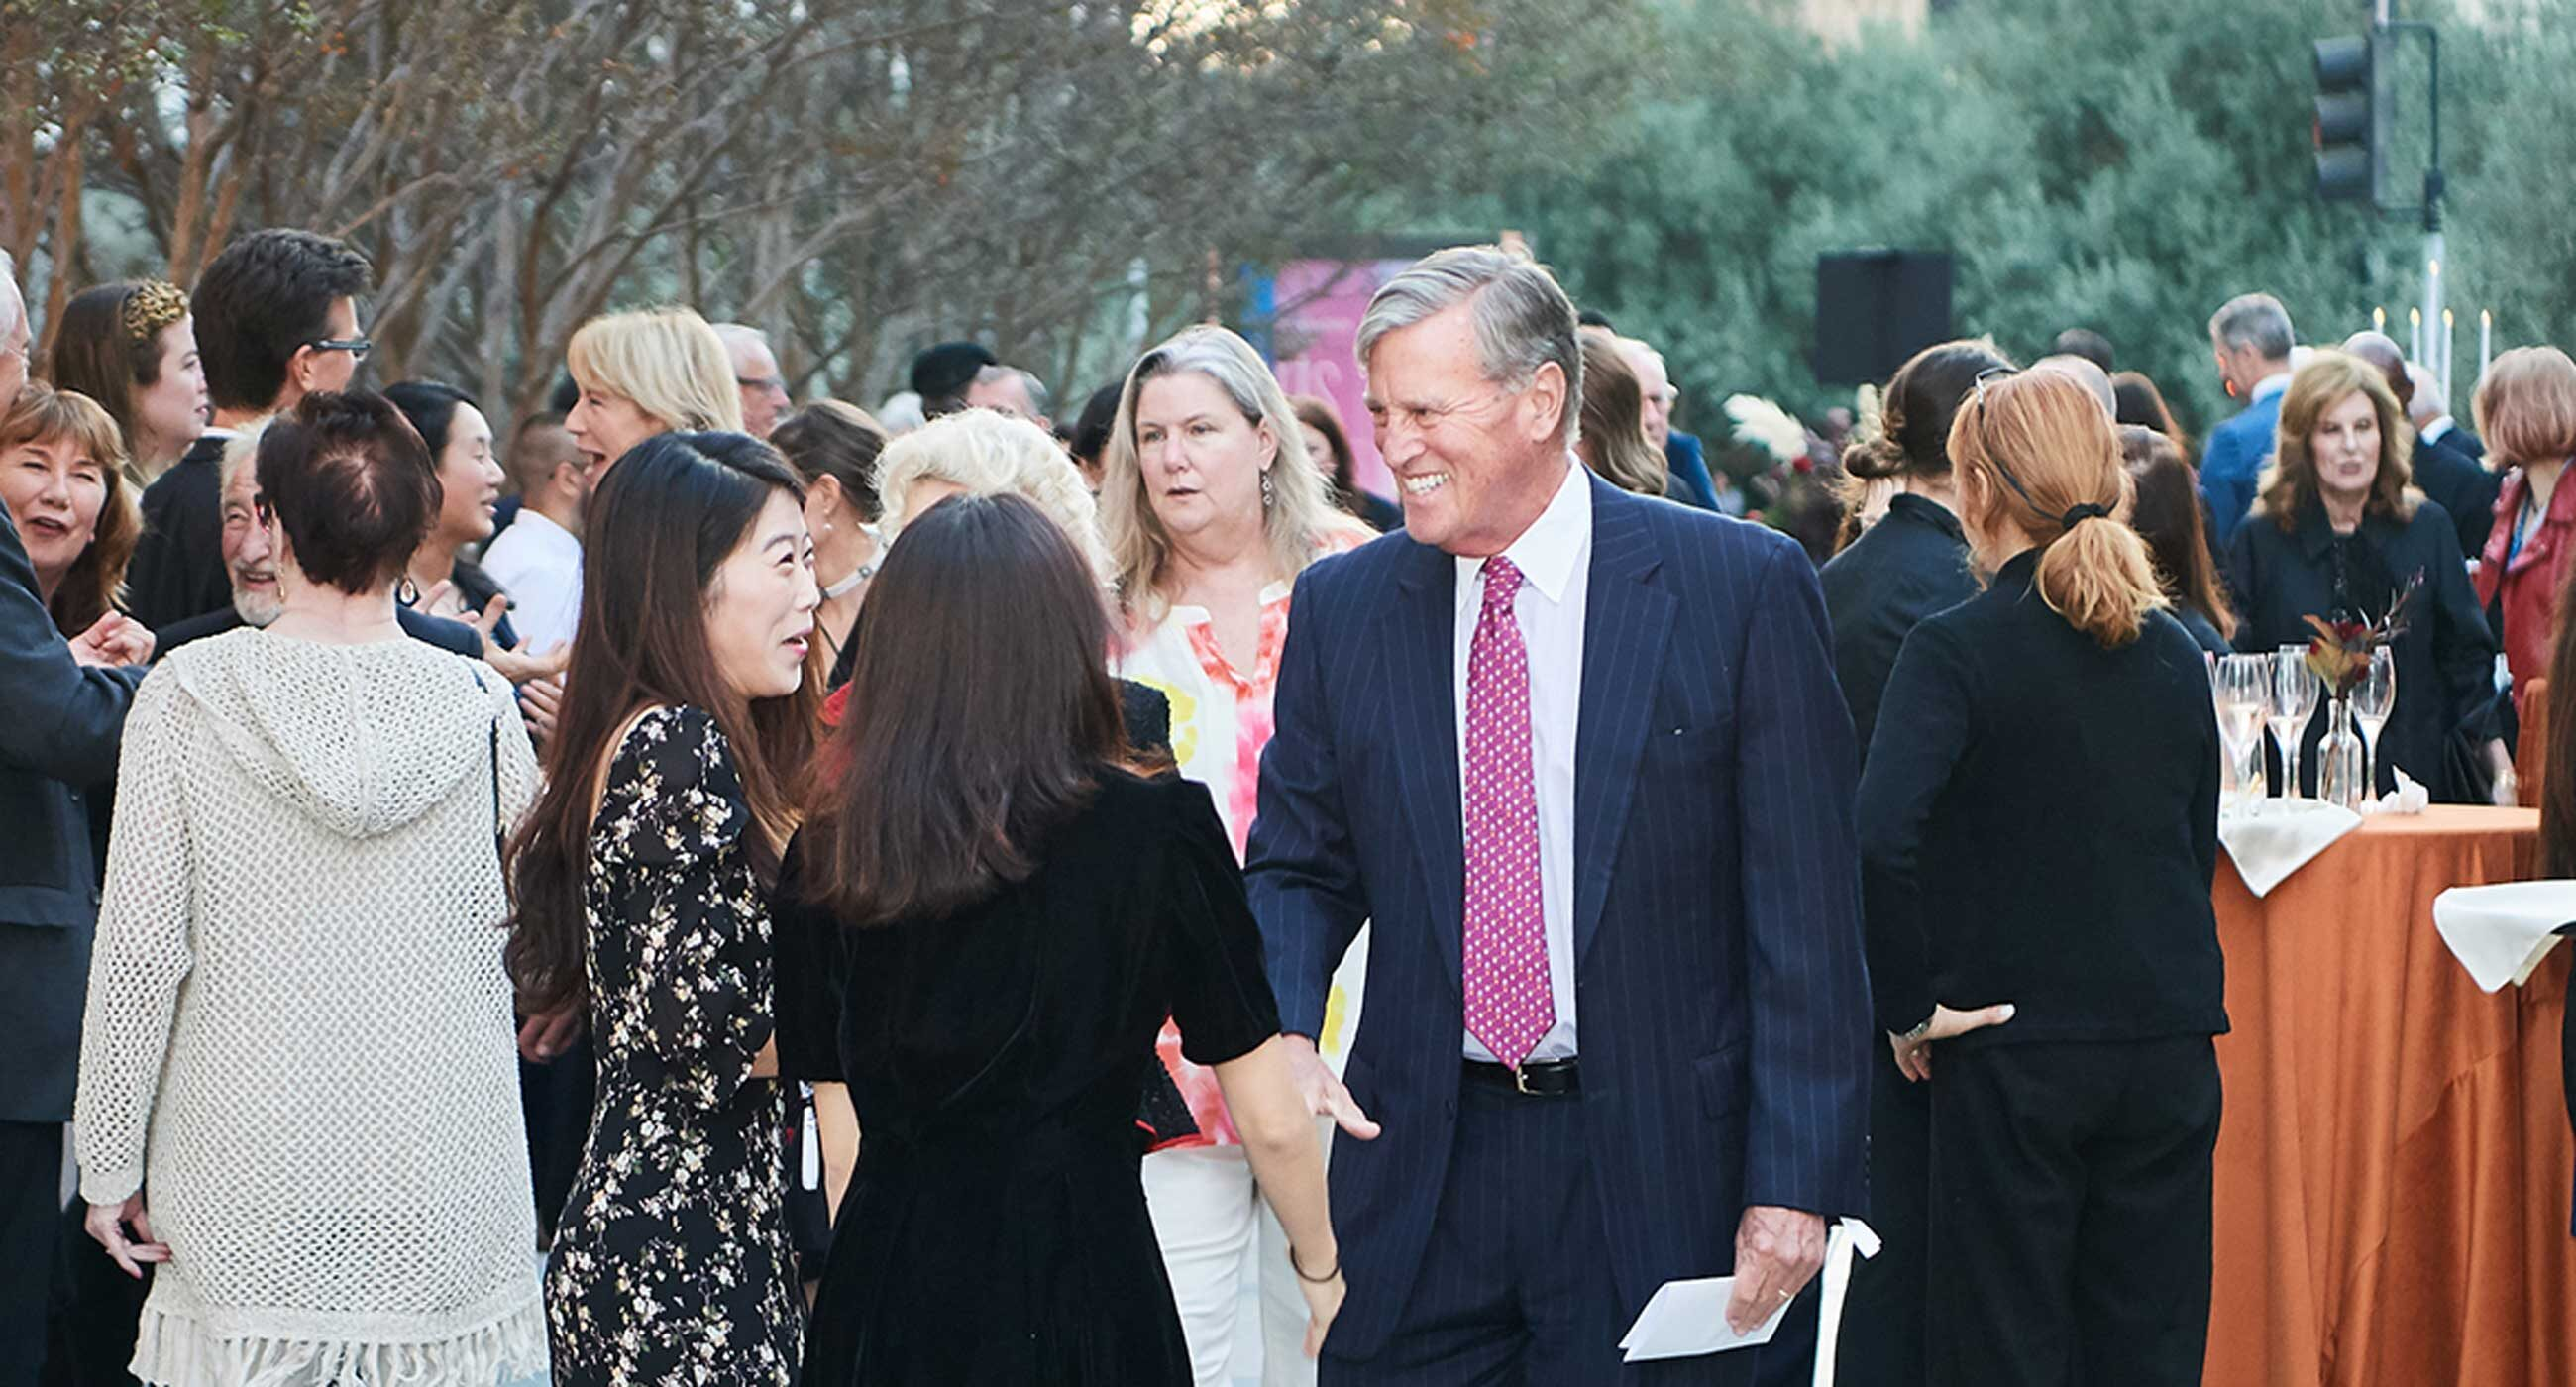 Donor Bill Kennedy talks to Colburn faculty at a reception